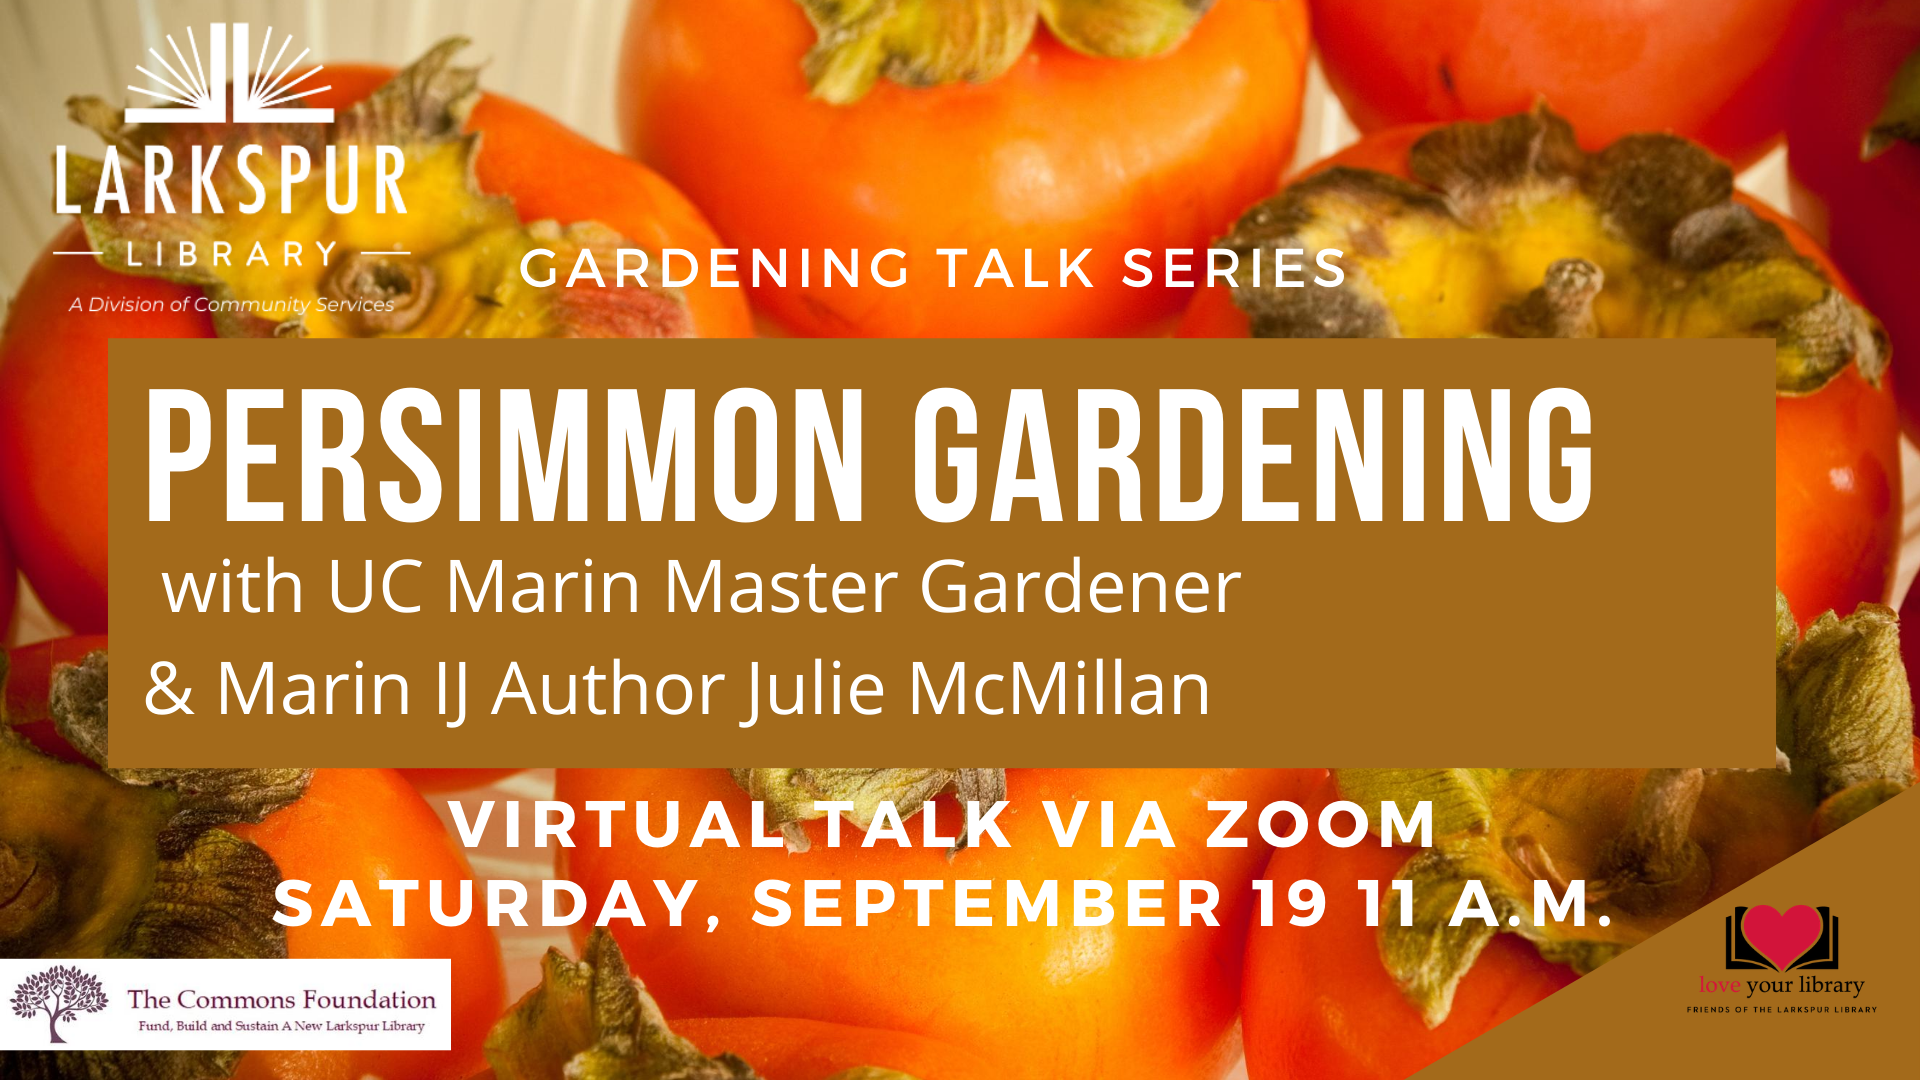 Persimmons Gardening with UC Marin Master GArdener Julie McMillan 9-19 at 11 AM